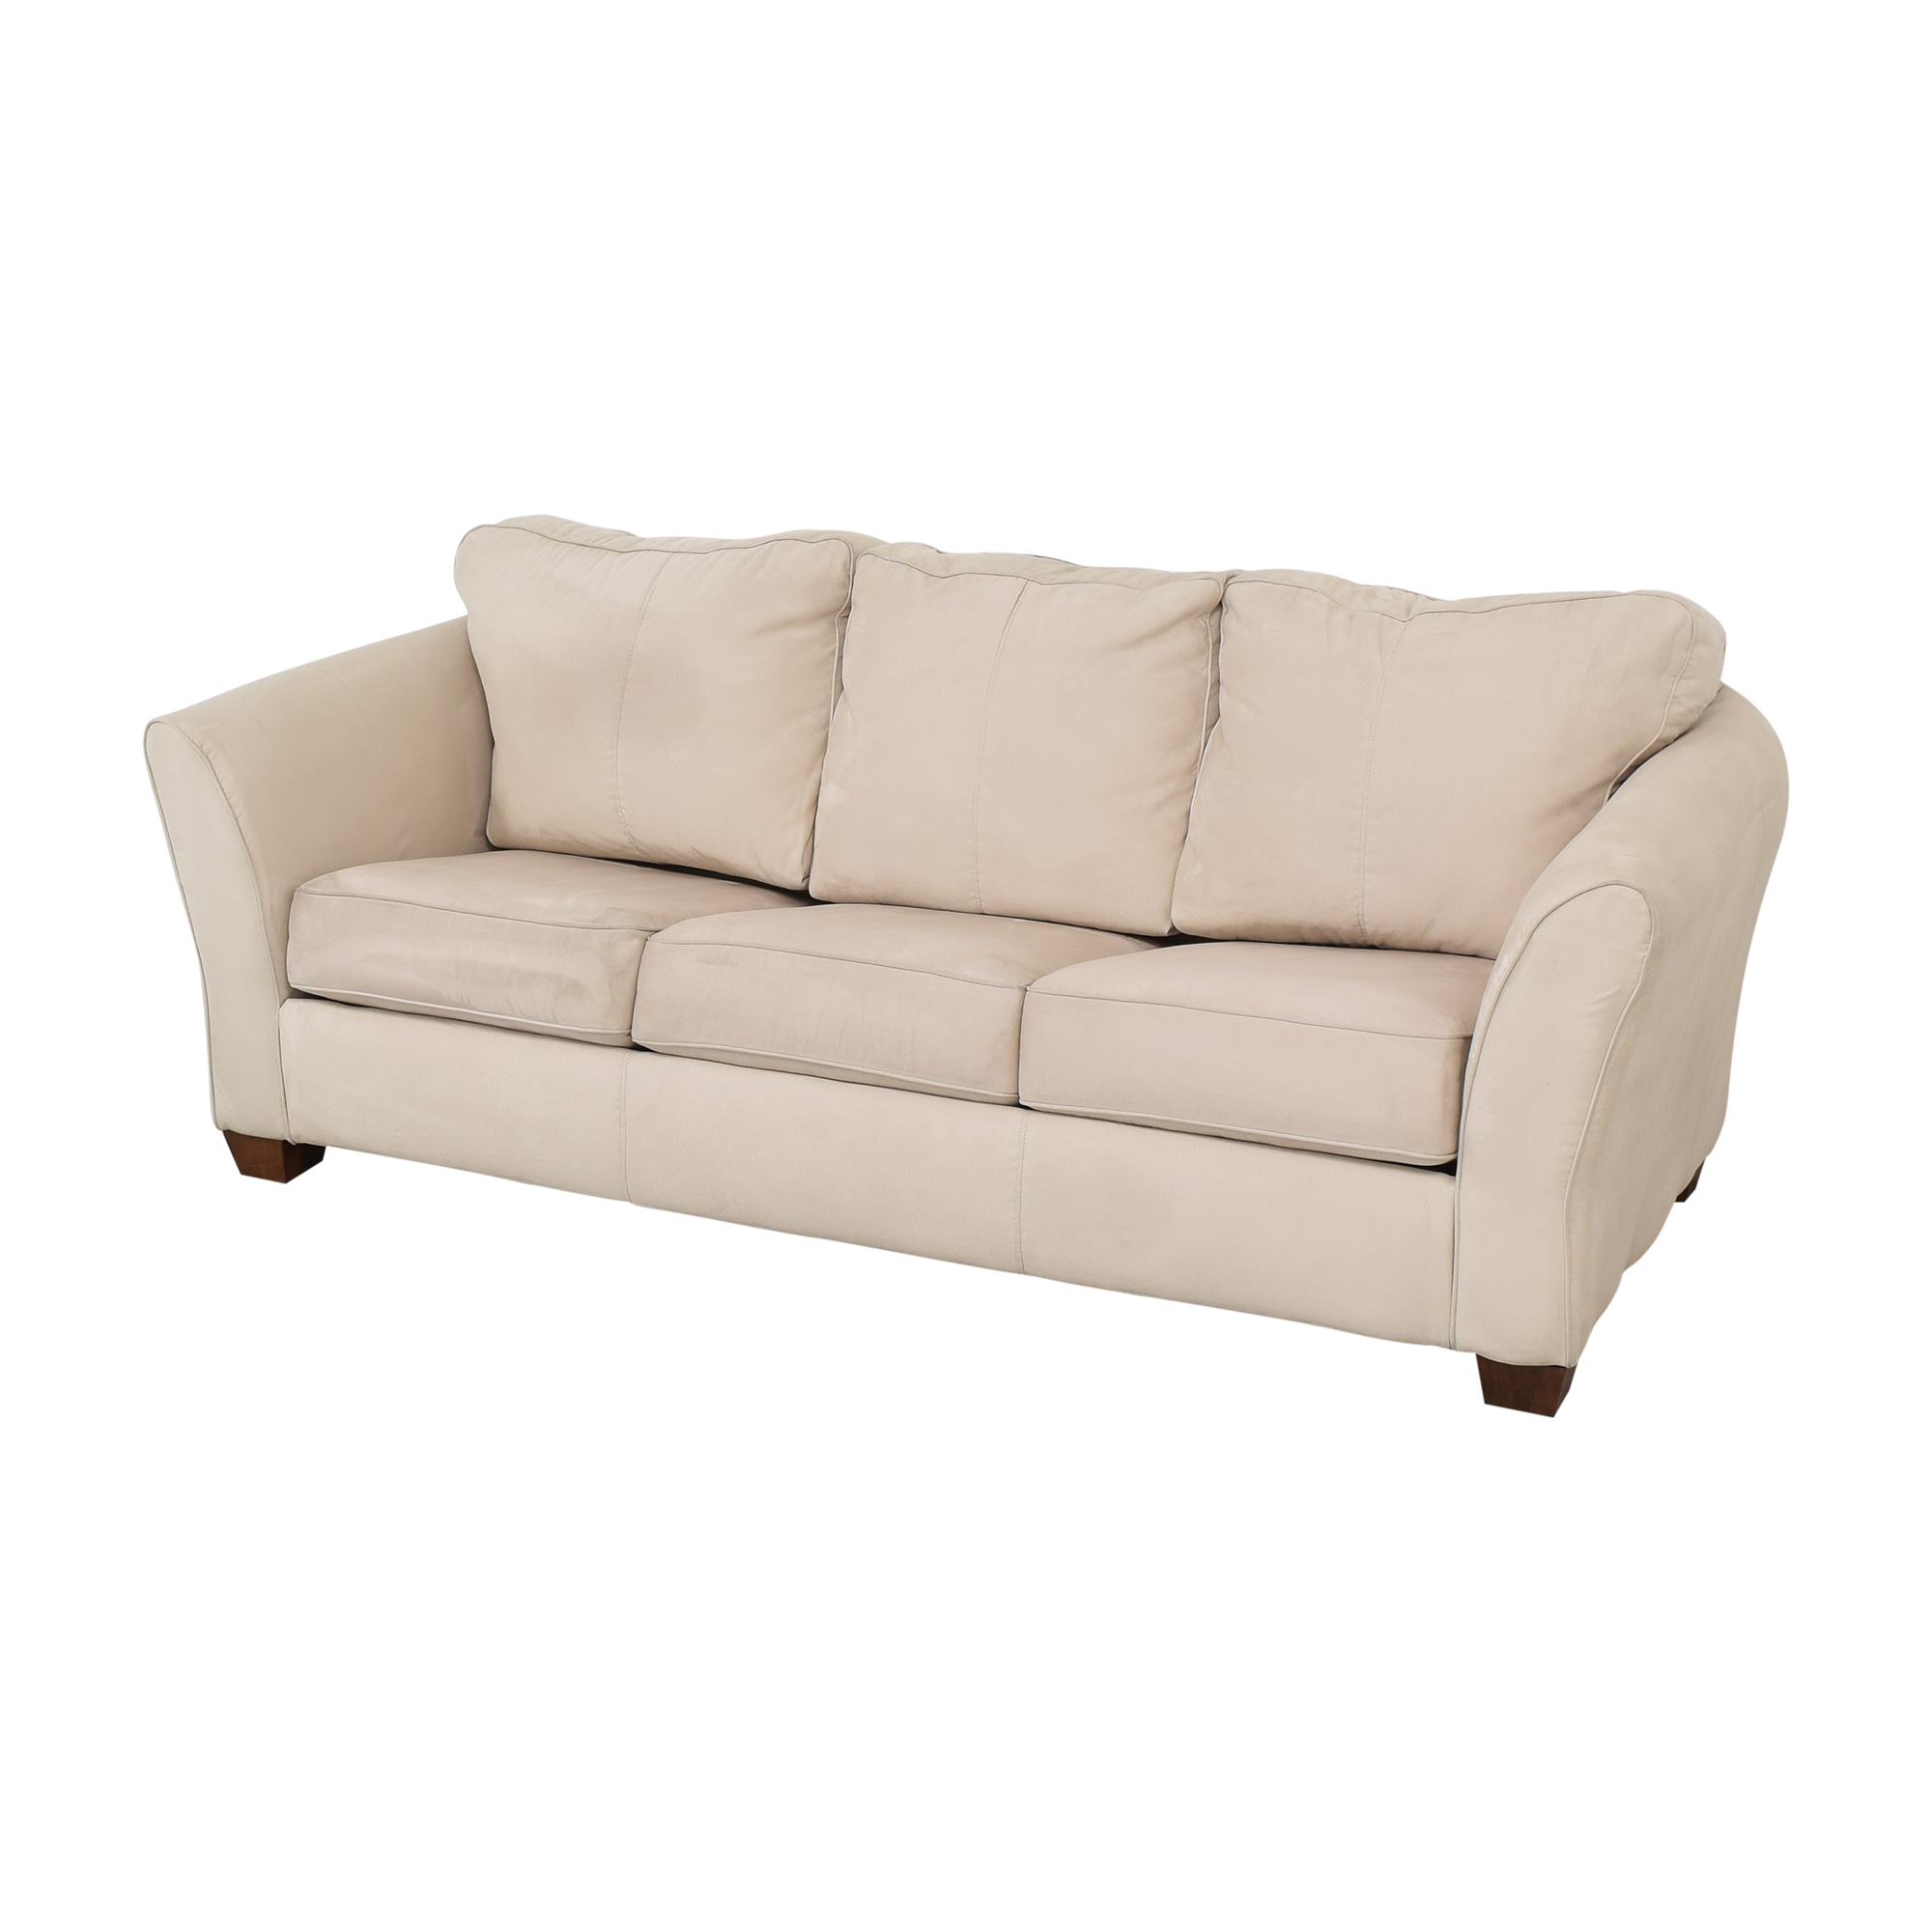 Ashley Furniture Ashley Furniture Queen Sleeper Sofa Sofa Beds